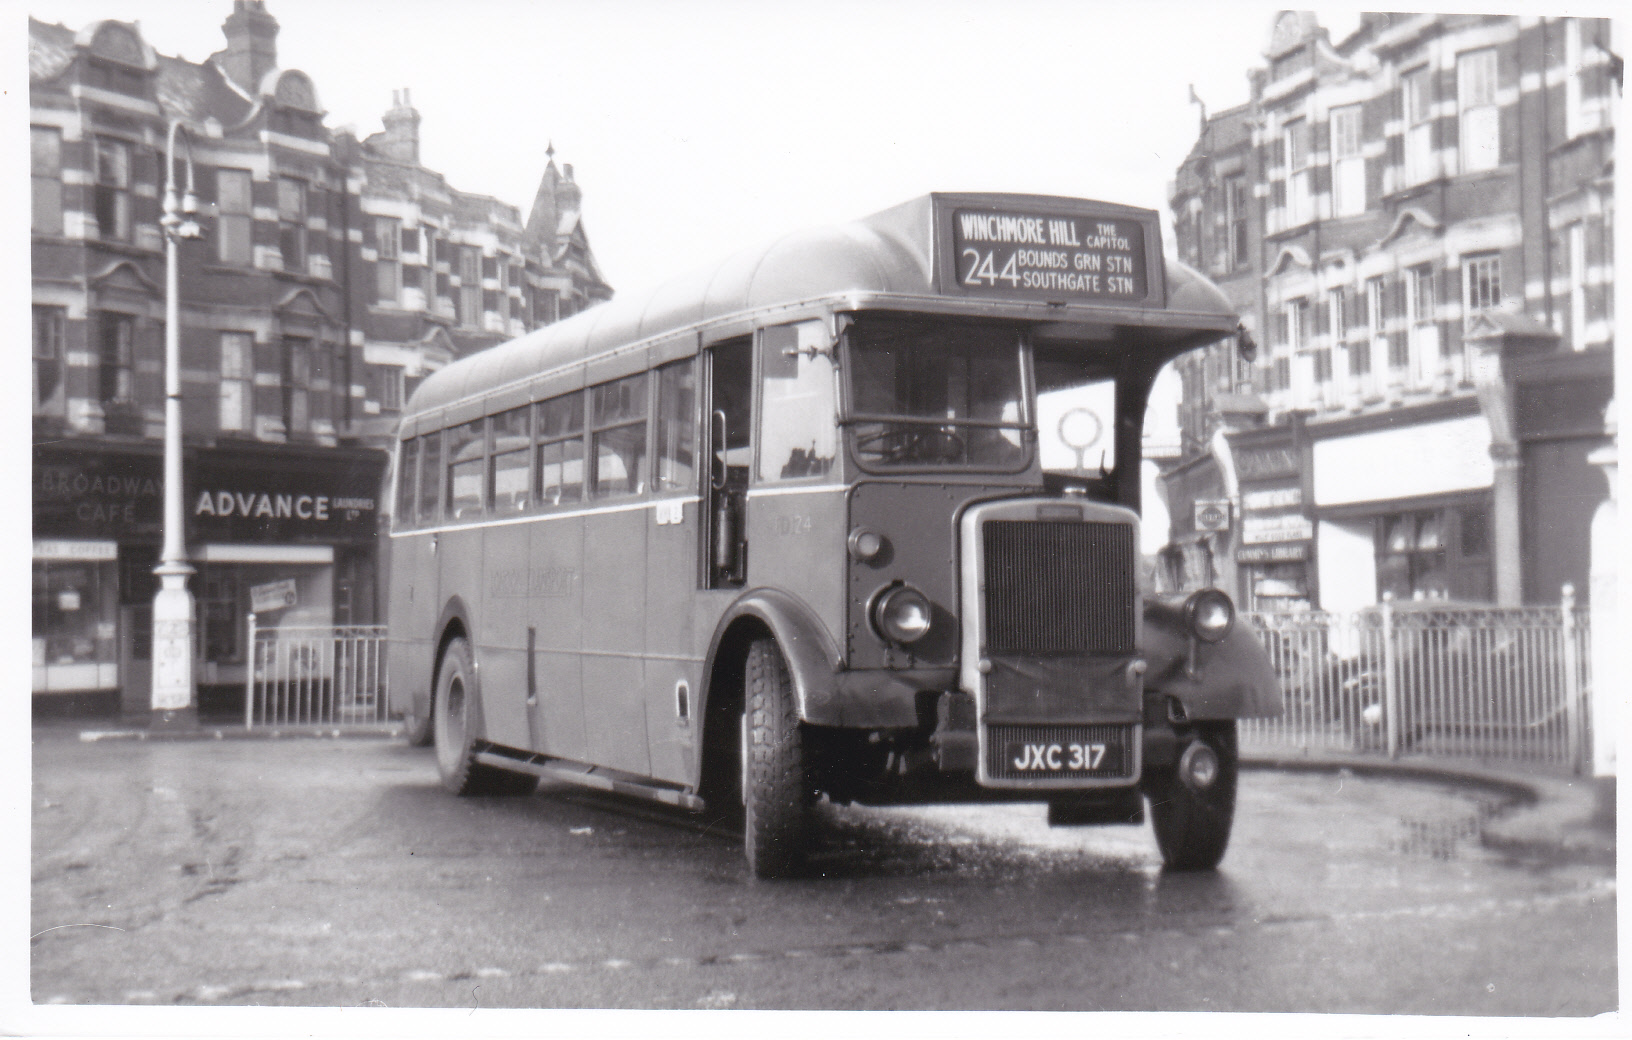 Bus 244 TD 24 Jan 1947 Muswell Hill to Kingston 1953